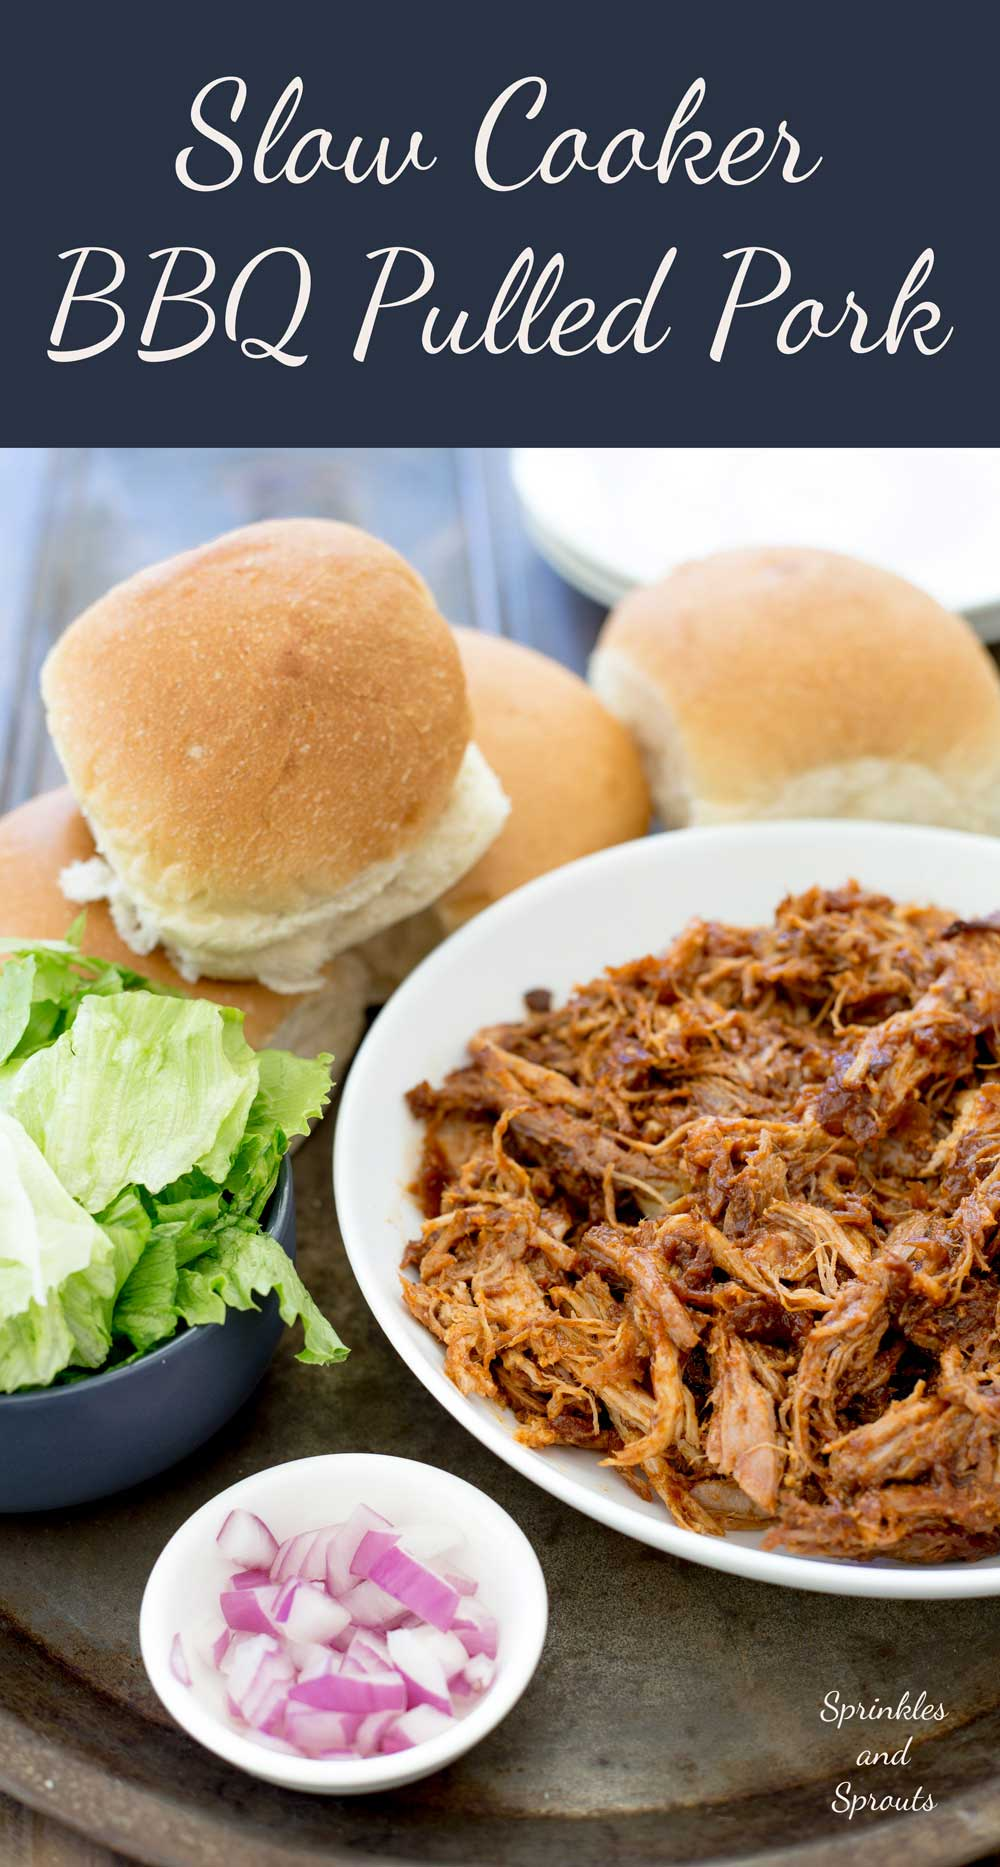 Who doesn't love pulled pork!!!! Shredded delicious meat that you can use in so many different ways!!!!! This BBQ pulled pork recipe is awesome as it cooks happily in the slow cooker, and makes the most delicious sauce. Effortless scrumptious dinner!!! Hand-up who is up for that one!